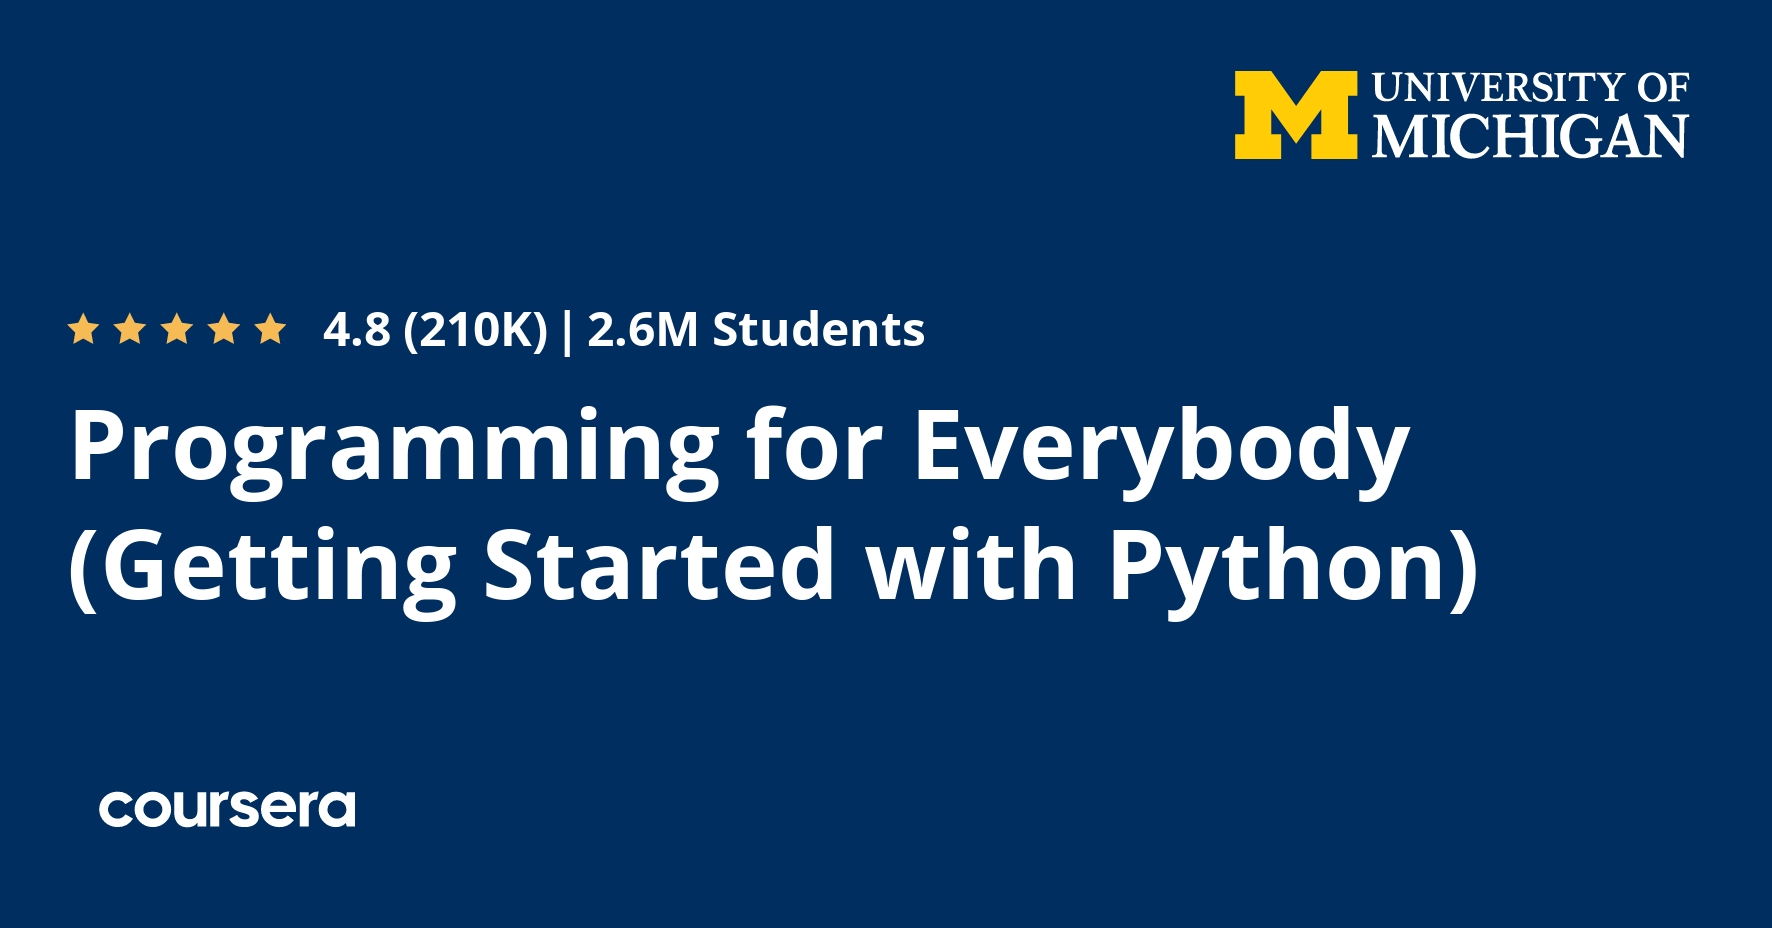 Programming for Everybody (Getting Started with Python) (Coursera)